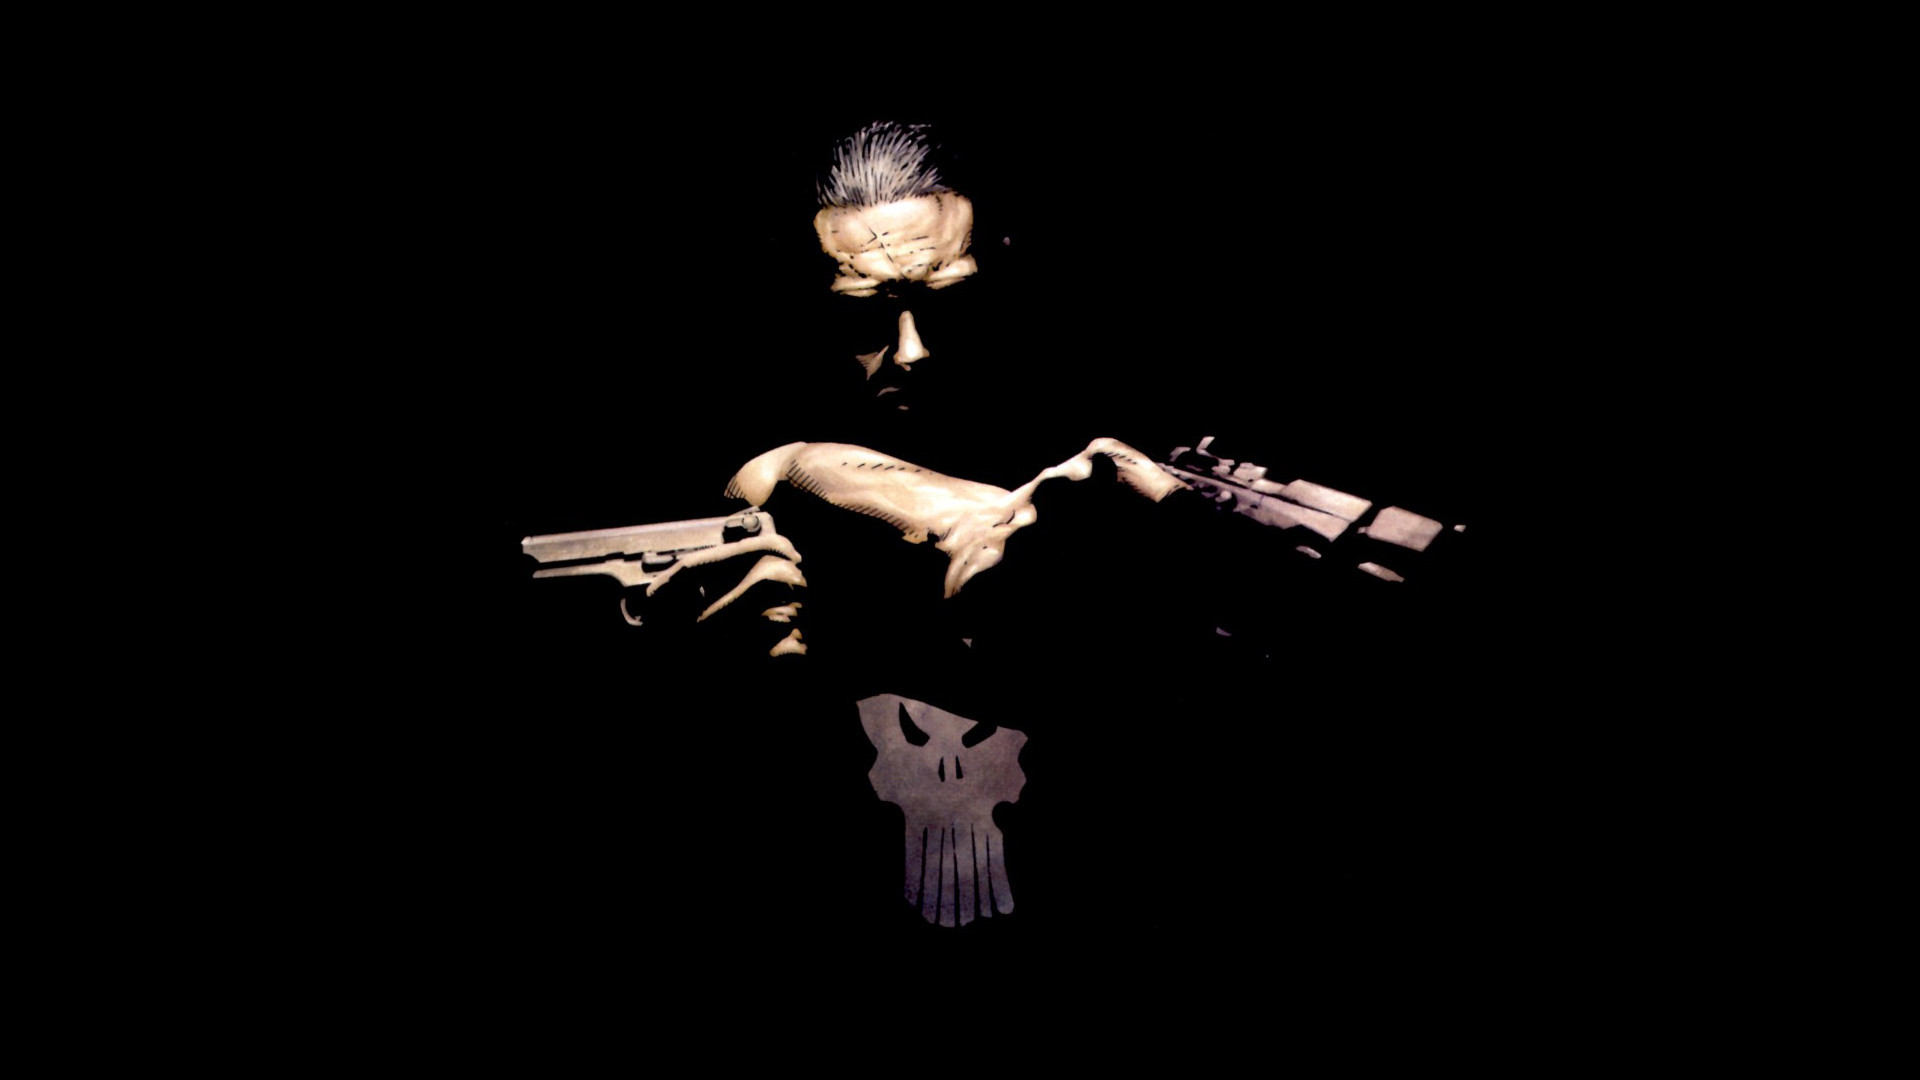 1920x1080 The Punisher Wallpaper  The, Punisher, Marvel, Comics